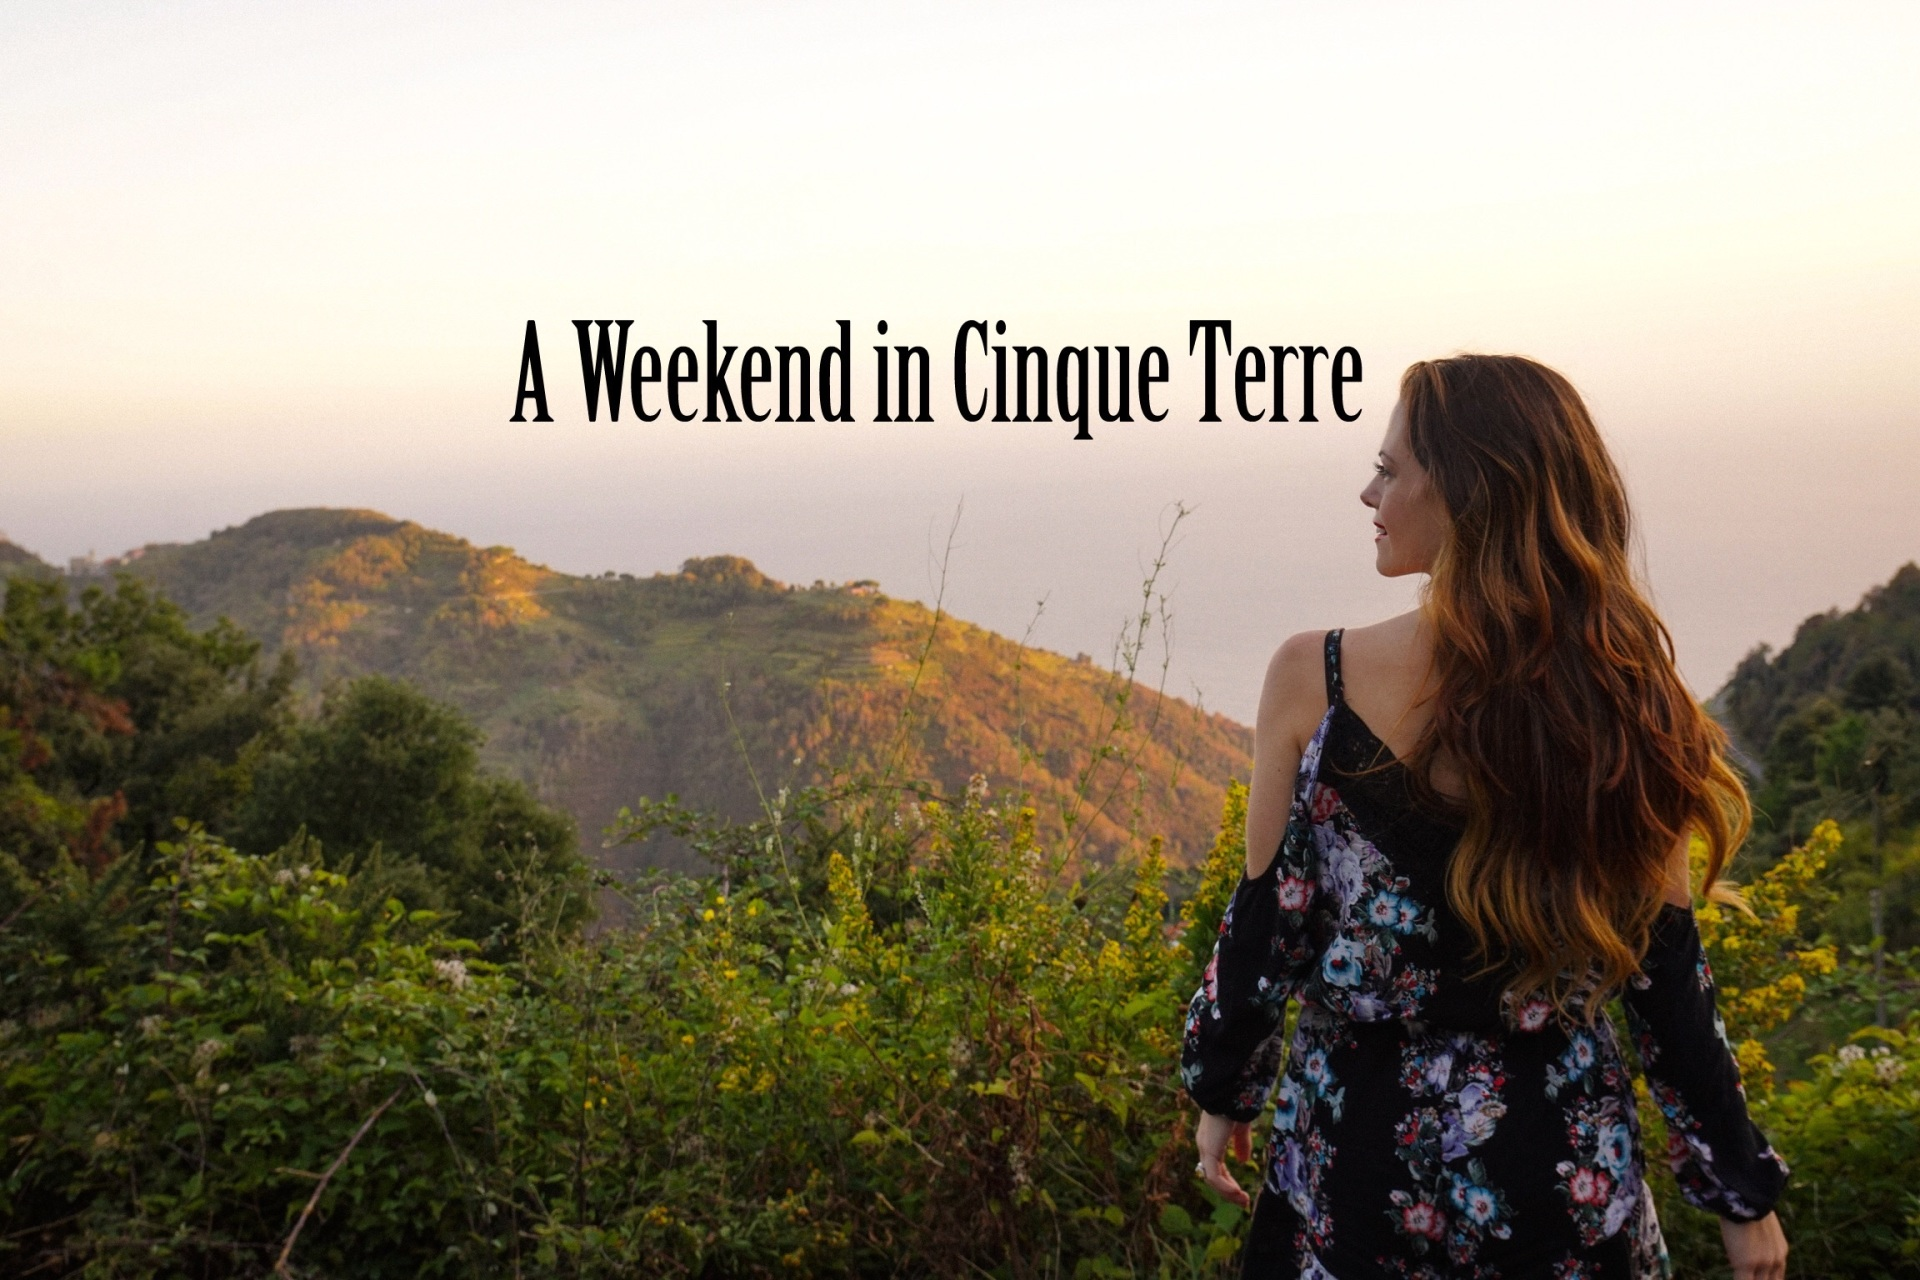 A Weekend in Cinque Terre